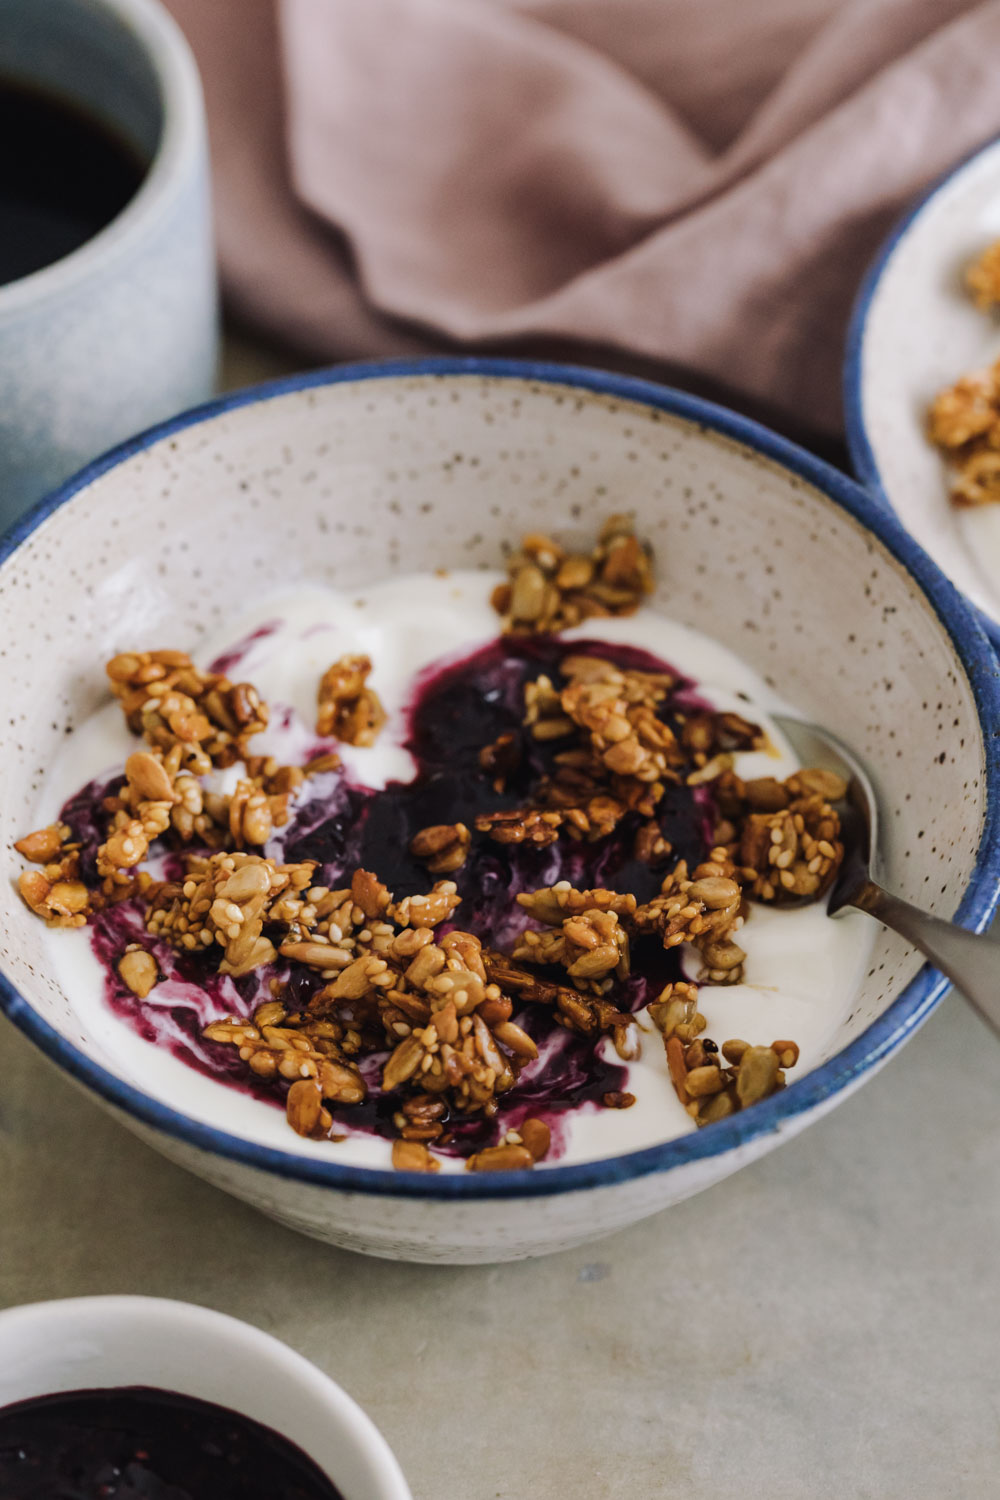 Close-up side angle of yogurt topped with blueberry chia jam and granola